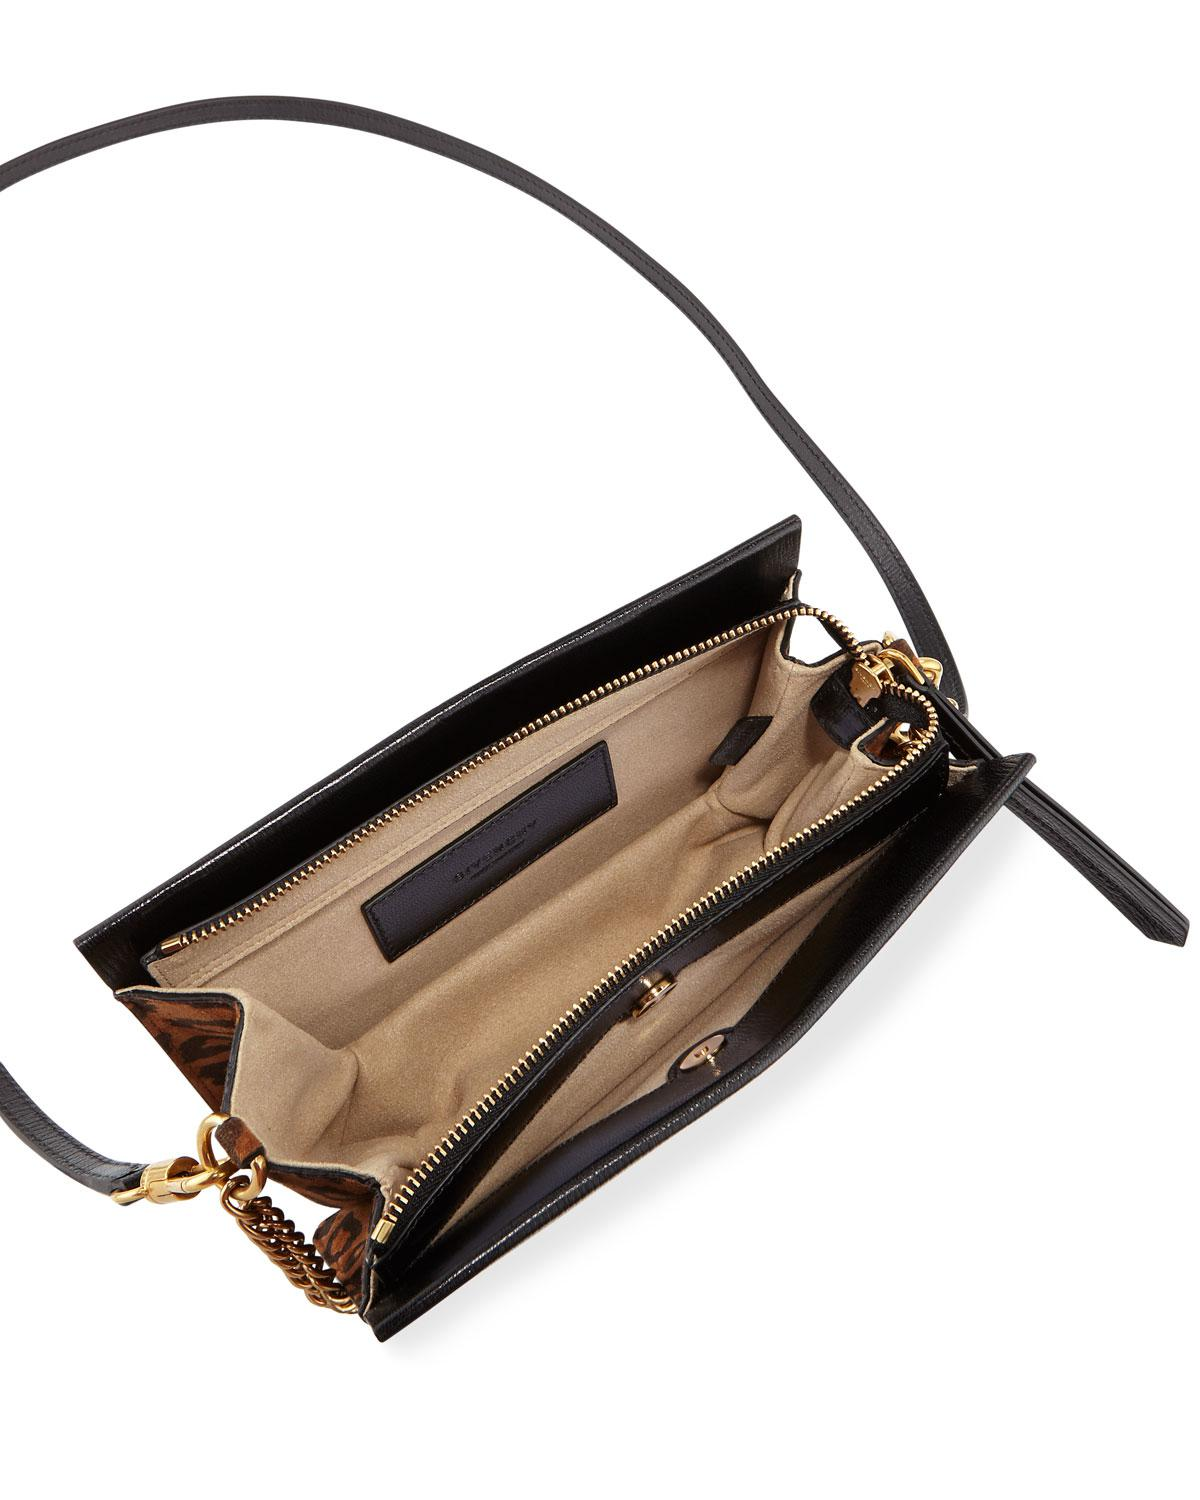 466c7a53e1 Lyst - Givenchy Cross 3 Leather   Leopard Suede Crossbody Bag in Black